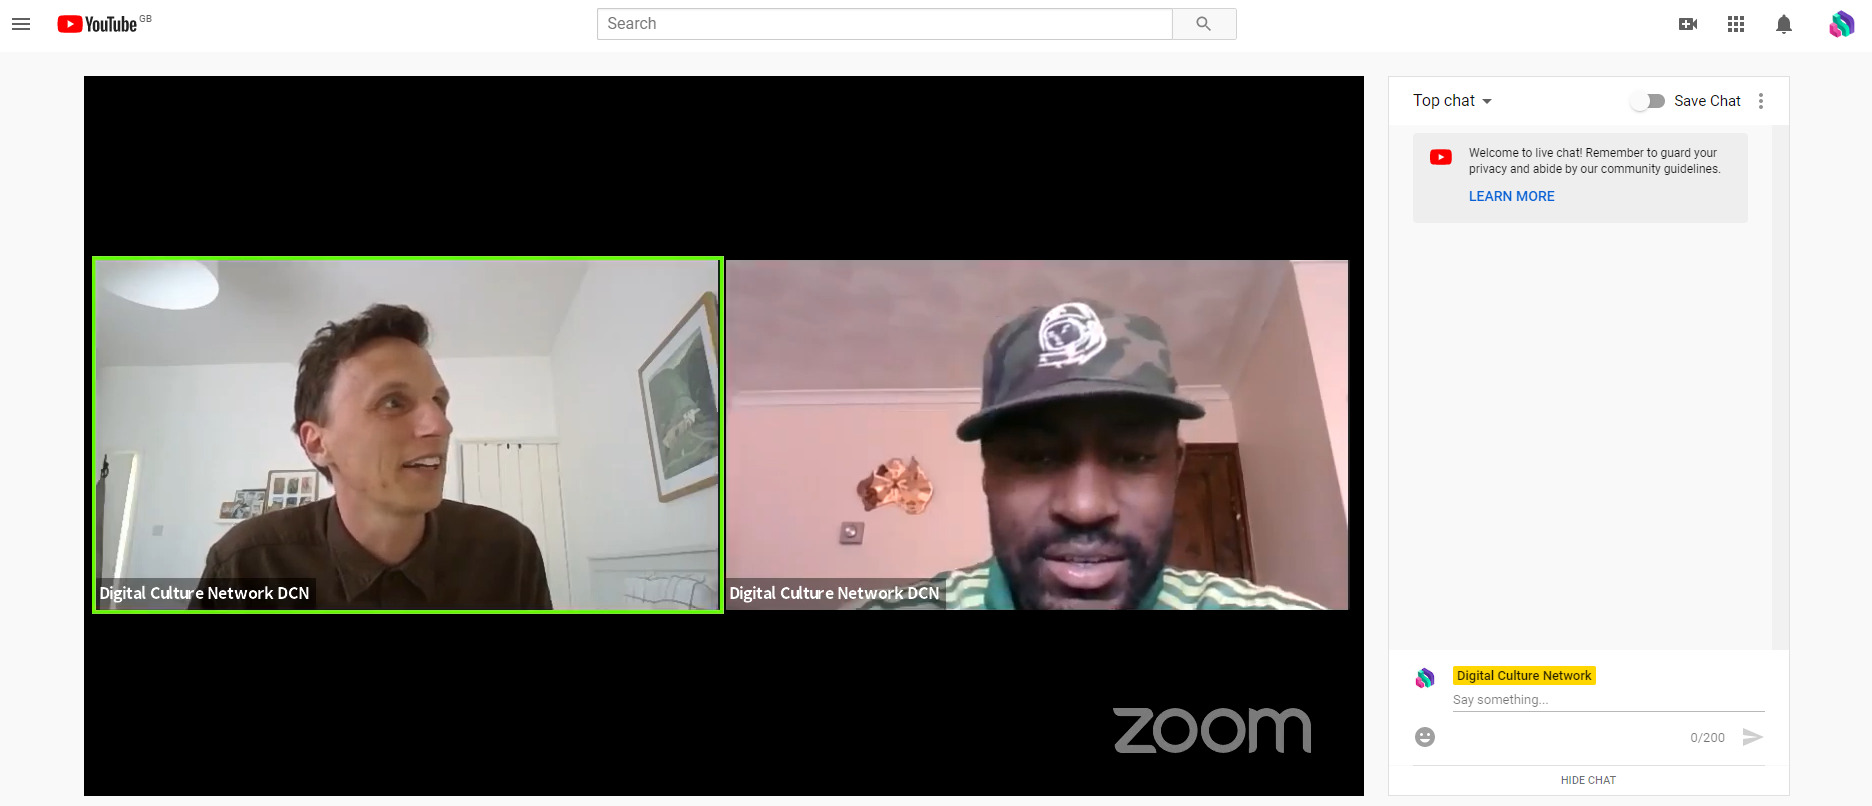 A screenshot showing a live stream being broadcast on YouTube. The live stream is being pulled from Zoom and features 2 young men connecting from different devices.